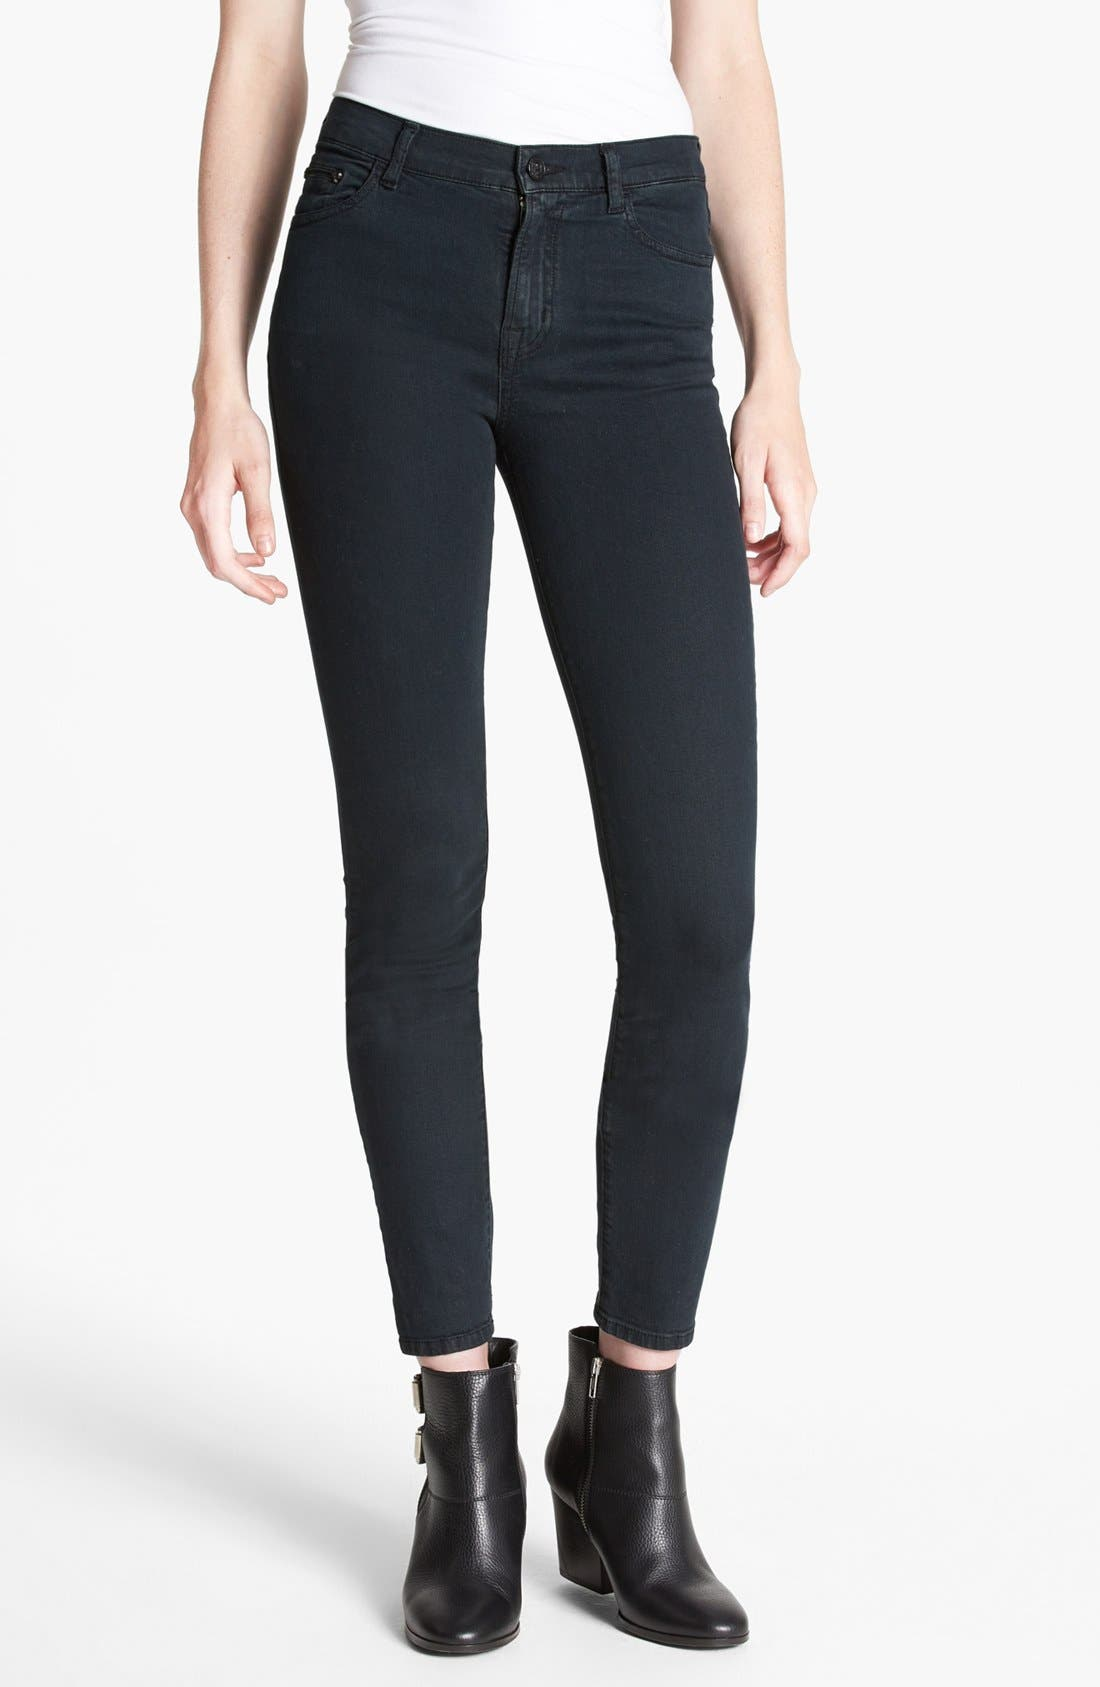 Alternate Image 1 Selected - The Kooples Skinny Stretch Jeans